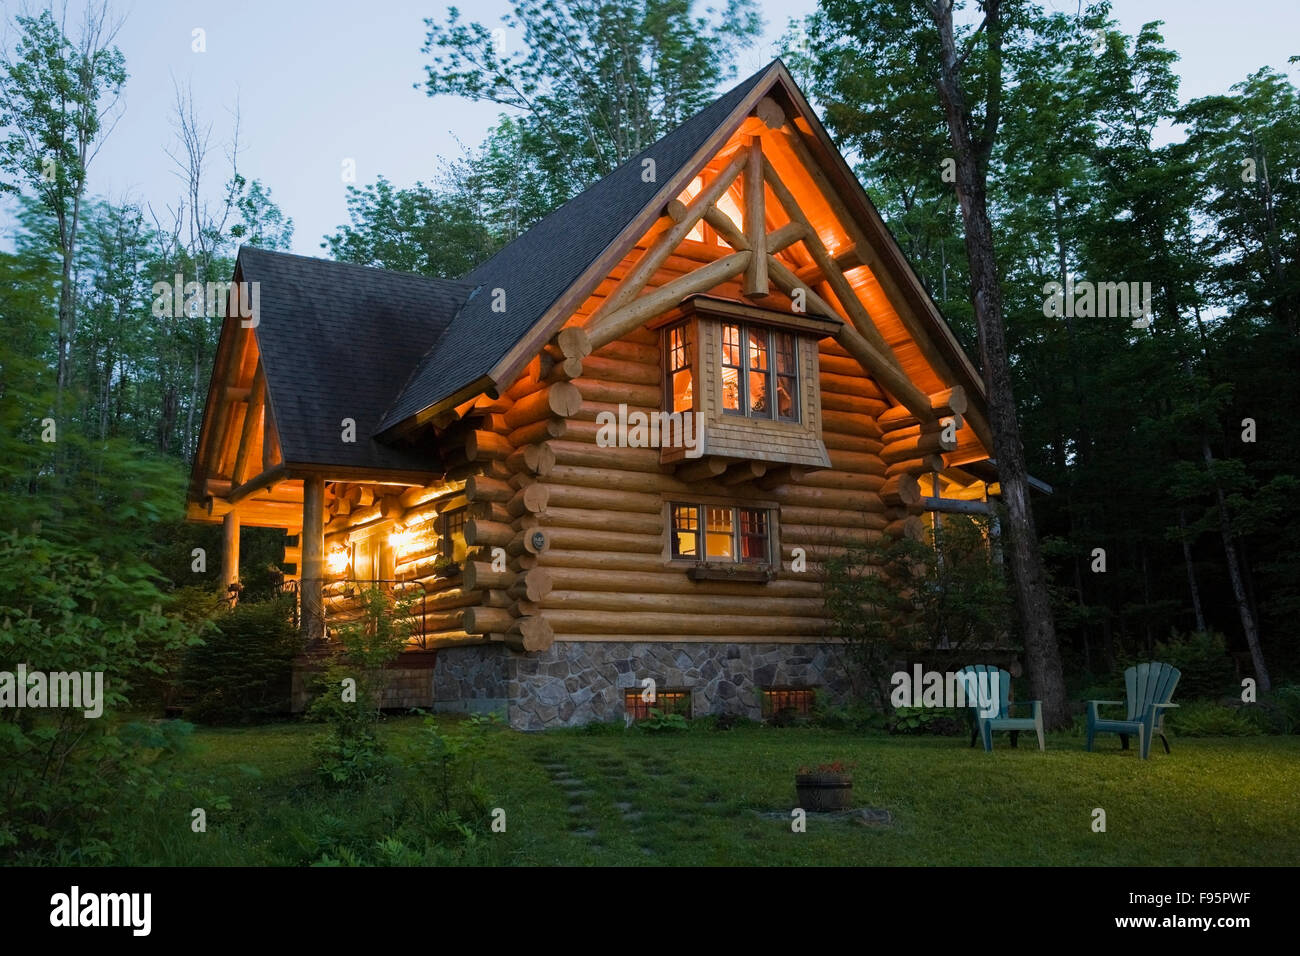 2003 built cottage style residential log home with a brown asphalt 2003 built cottage style residential log home with a brown asphalt shingles rooftop and a stone